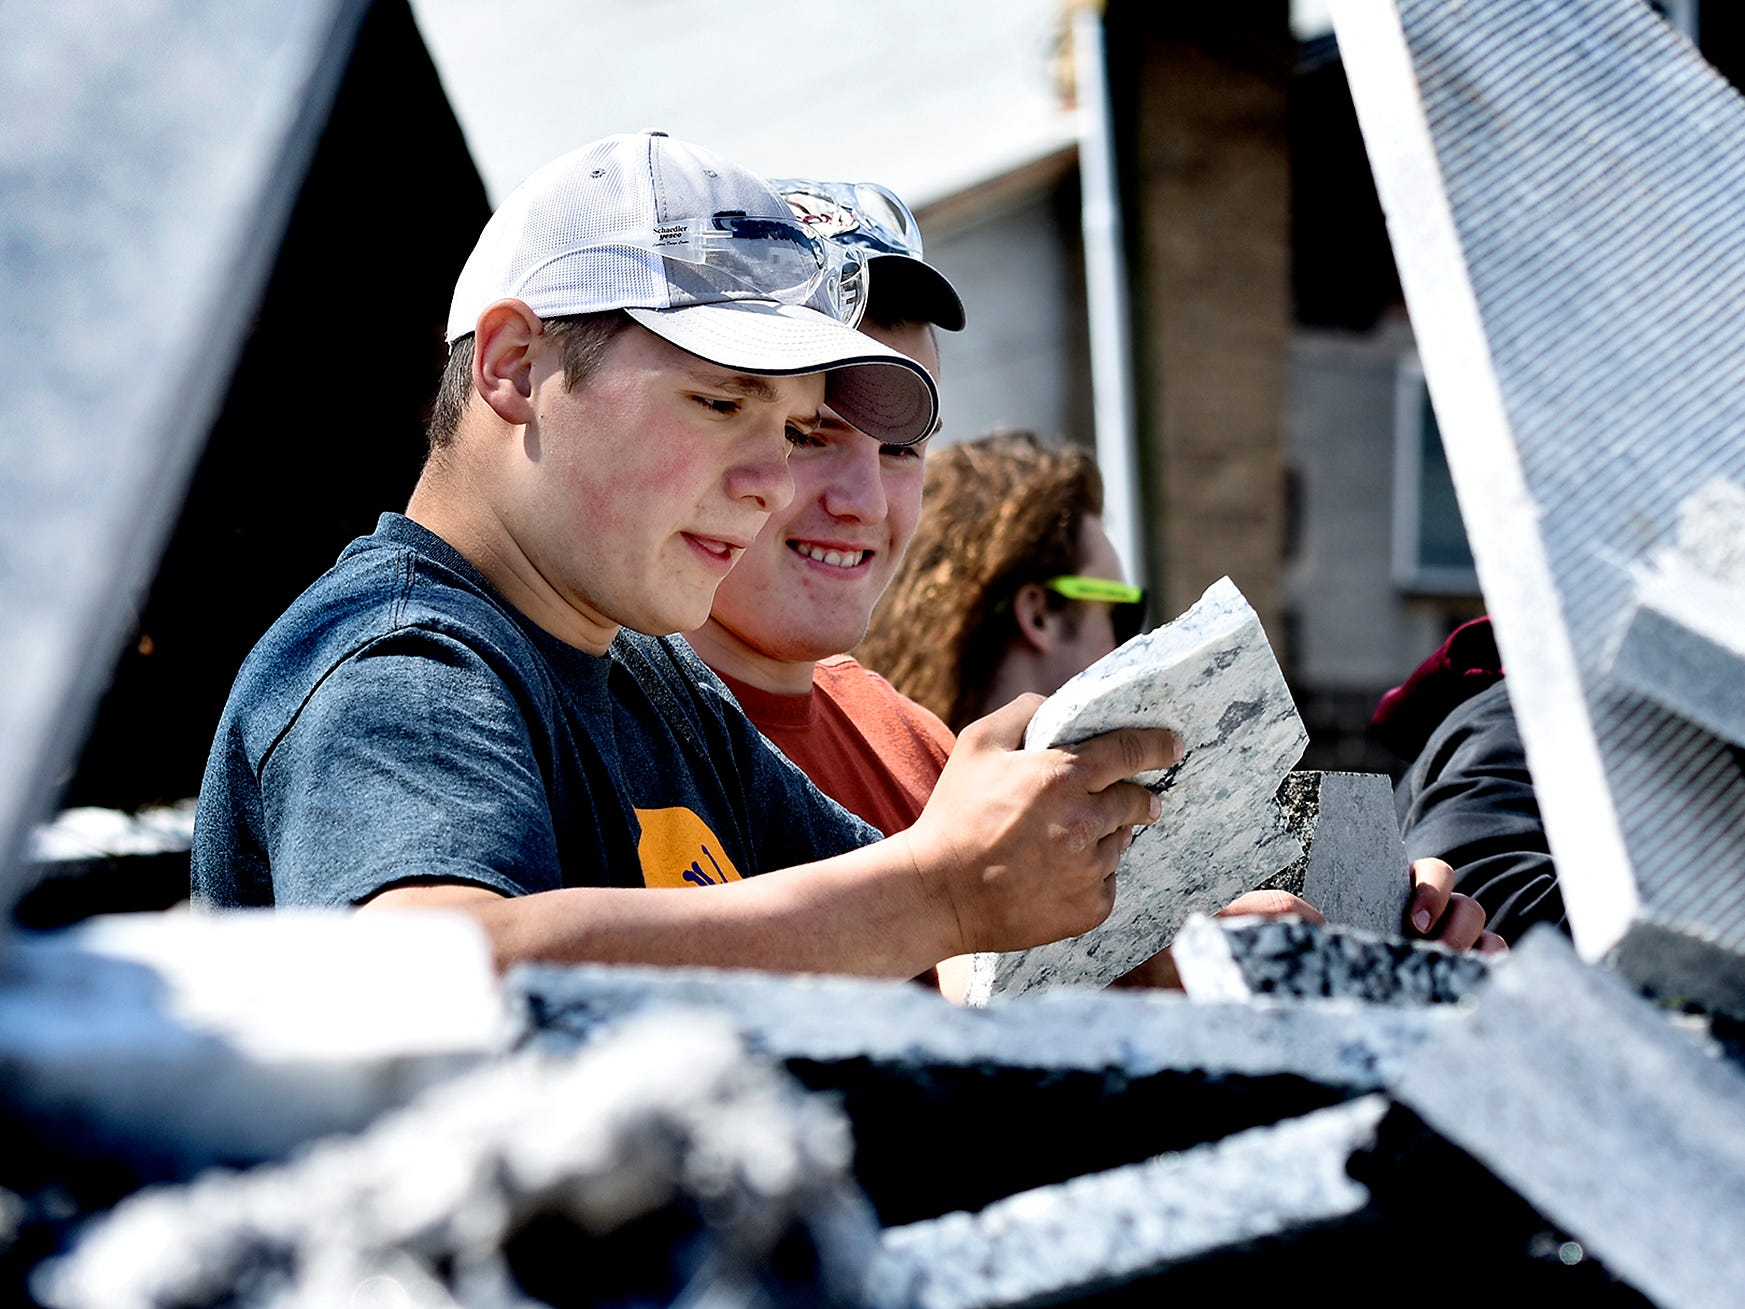 Spring Grove High School juniors Sam Parr, left, and Mason Pflueger rummage for marble scraps at Frank's Marble & Granite, in Red Lion, during the York Builders Association 2nd Annual Construction Career Day Monday, April 8, 2019. The goal of the program is to raise student-awareness about local career opportunities in the construction field. Association members host the students. The association has planned similar events at various companies through April 17. Nine area high schools are participating in the program, according to the builders association. Bill Kalina photo